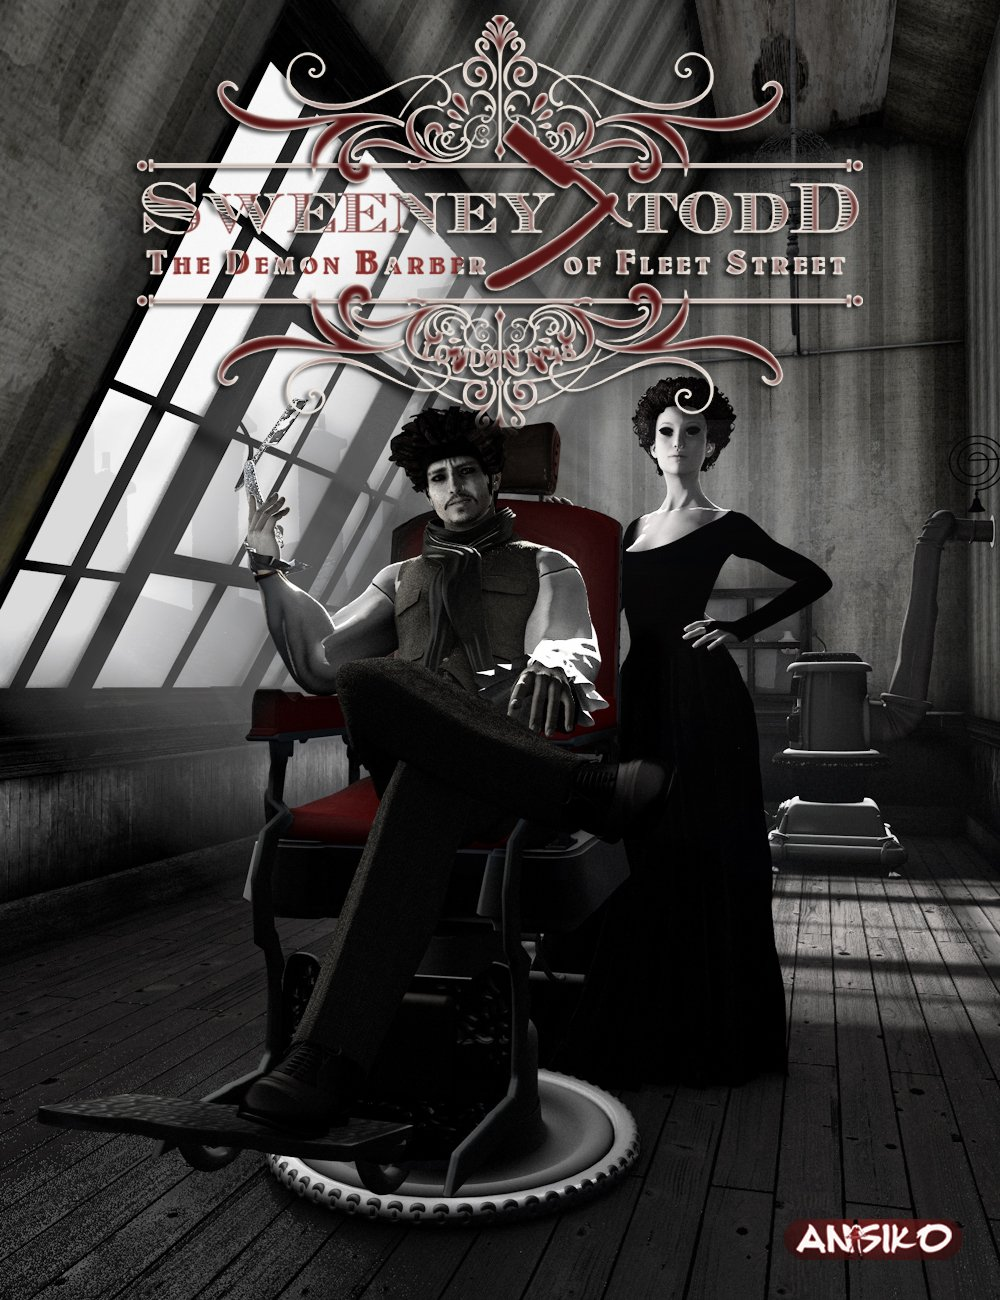 Sweeney Todd: The Demon Barber of Fleet Street by: Ansiko, 3D Models by Daz 3D